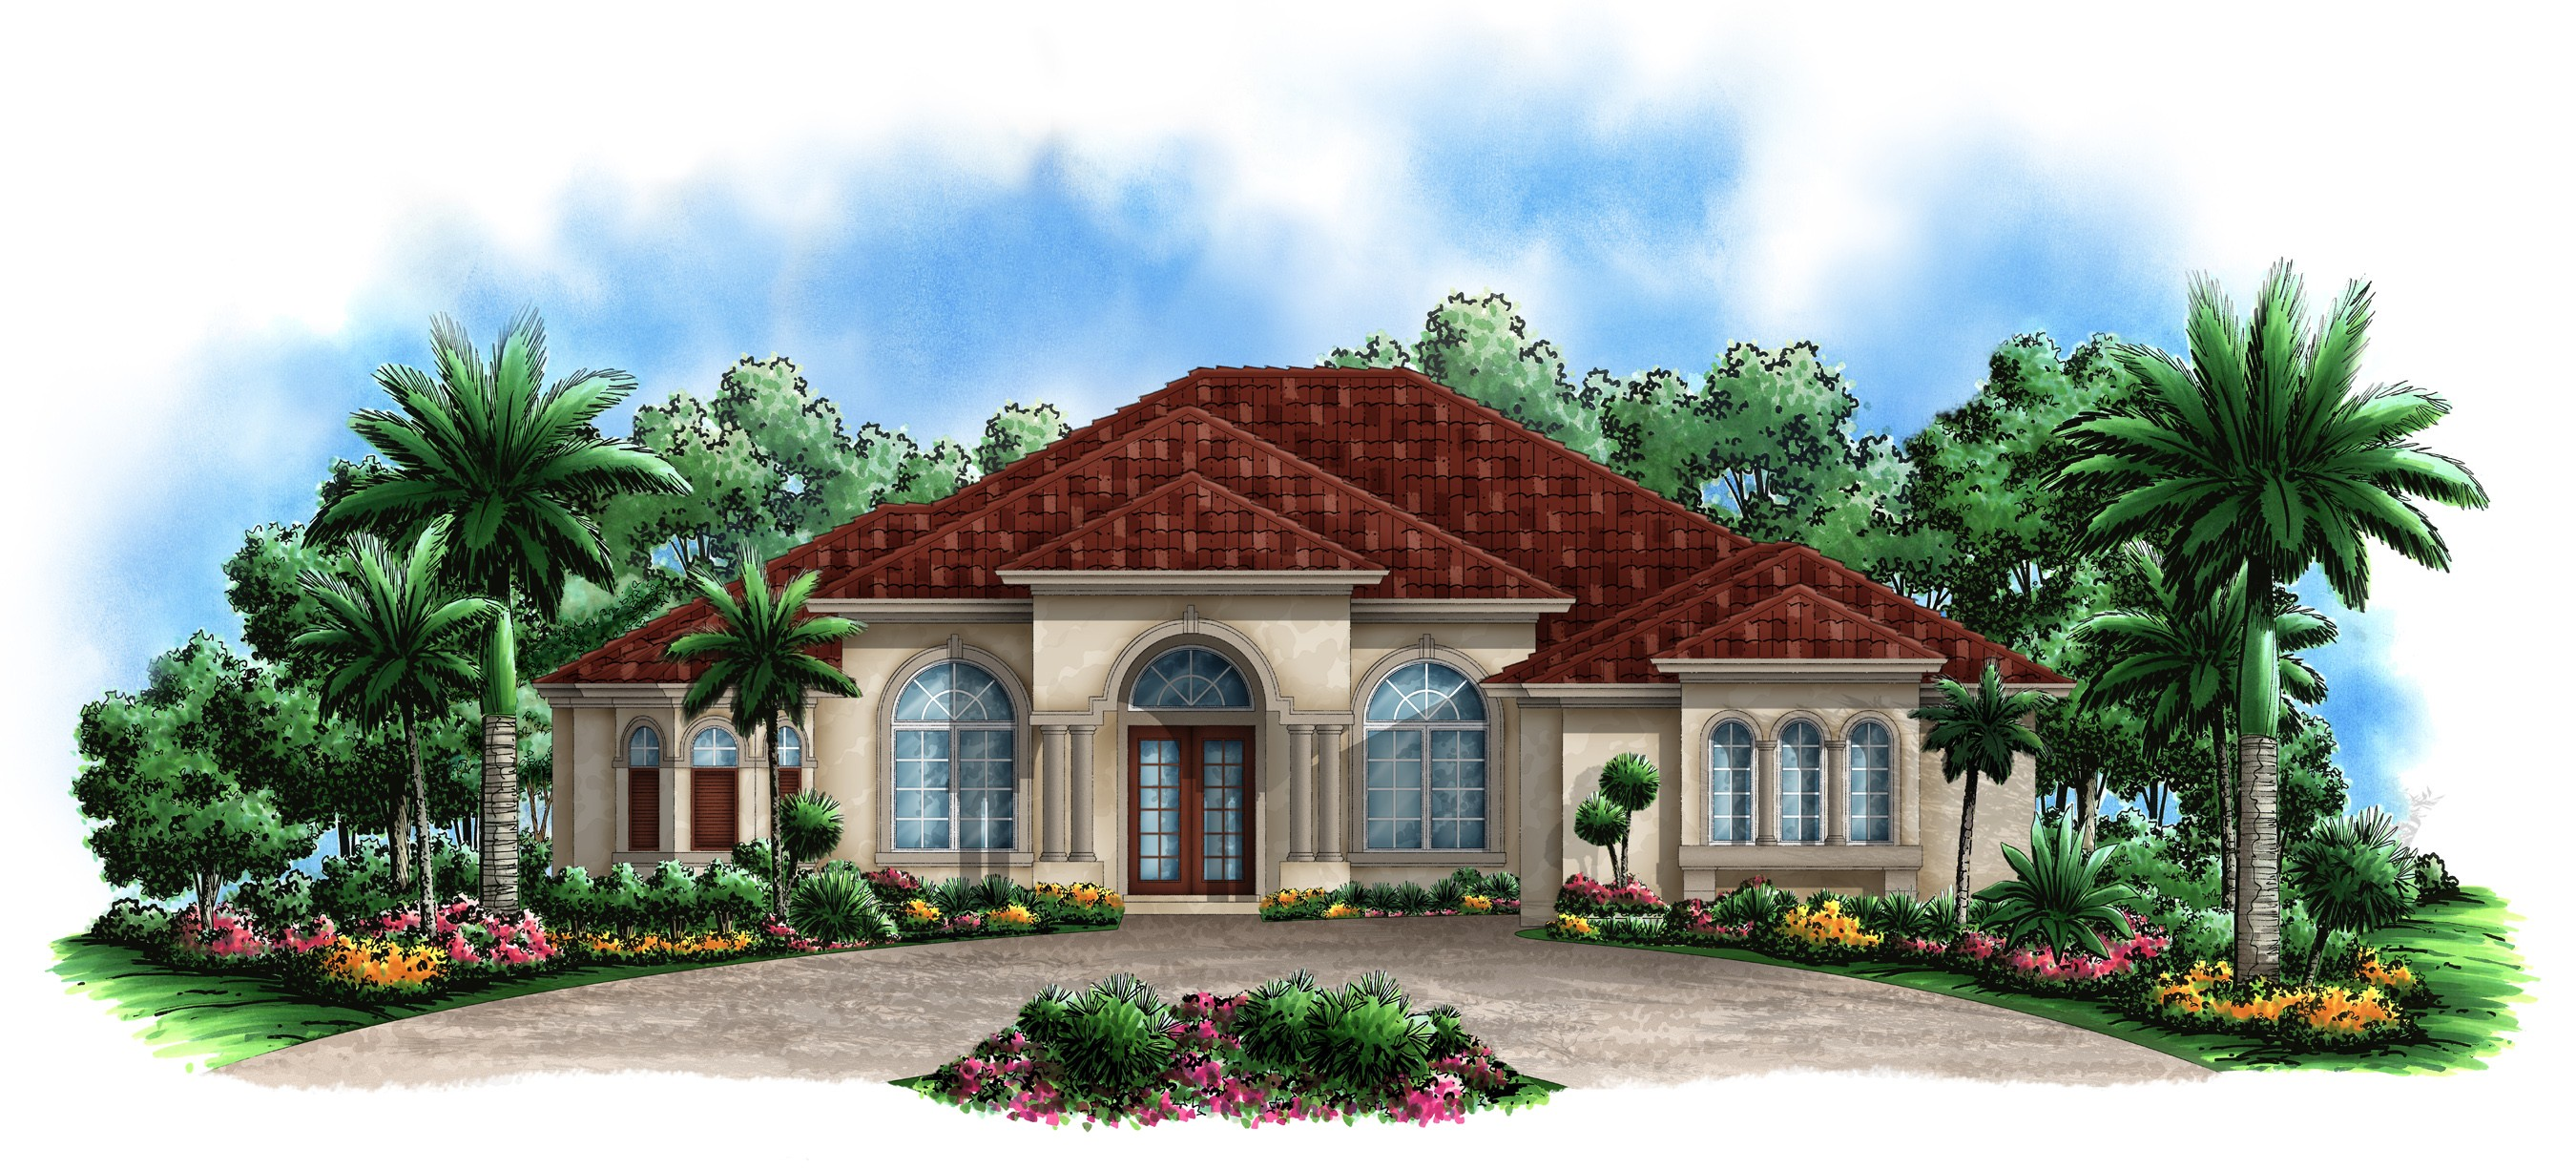 Great open house plan 66285we architectural designs for Beach house plans mediterranean